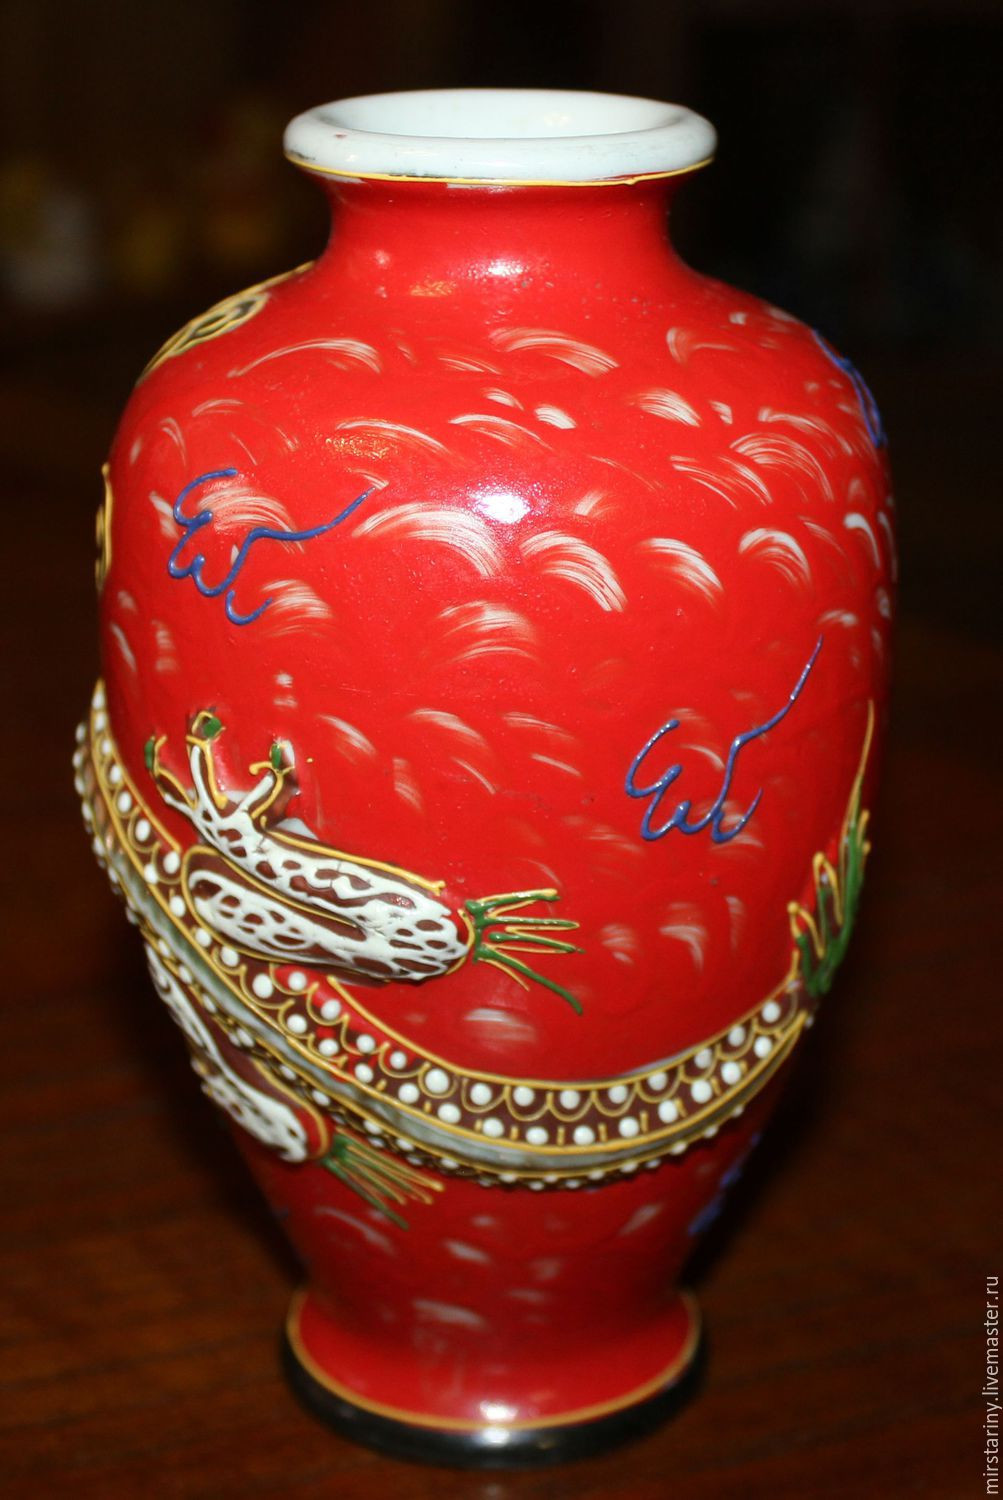 gold imari vase value of vintage decorative vase dragon hand painted imari japan shop within imari vintage interior decor order vintage decorative vase dragon hand painted